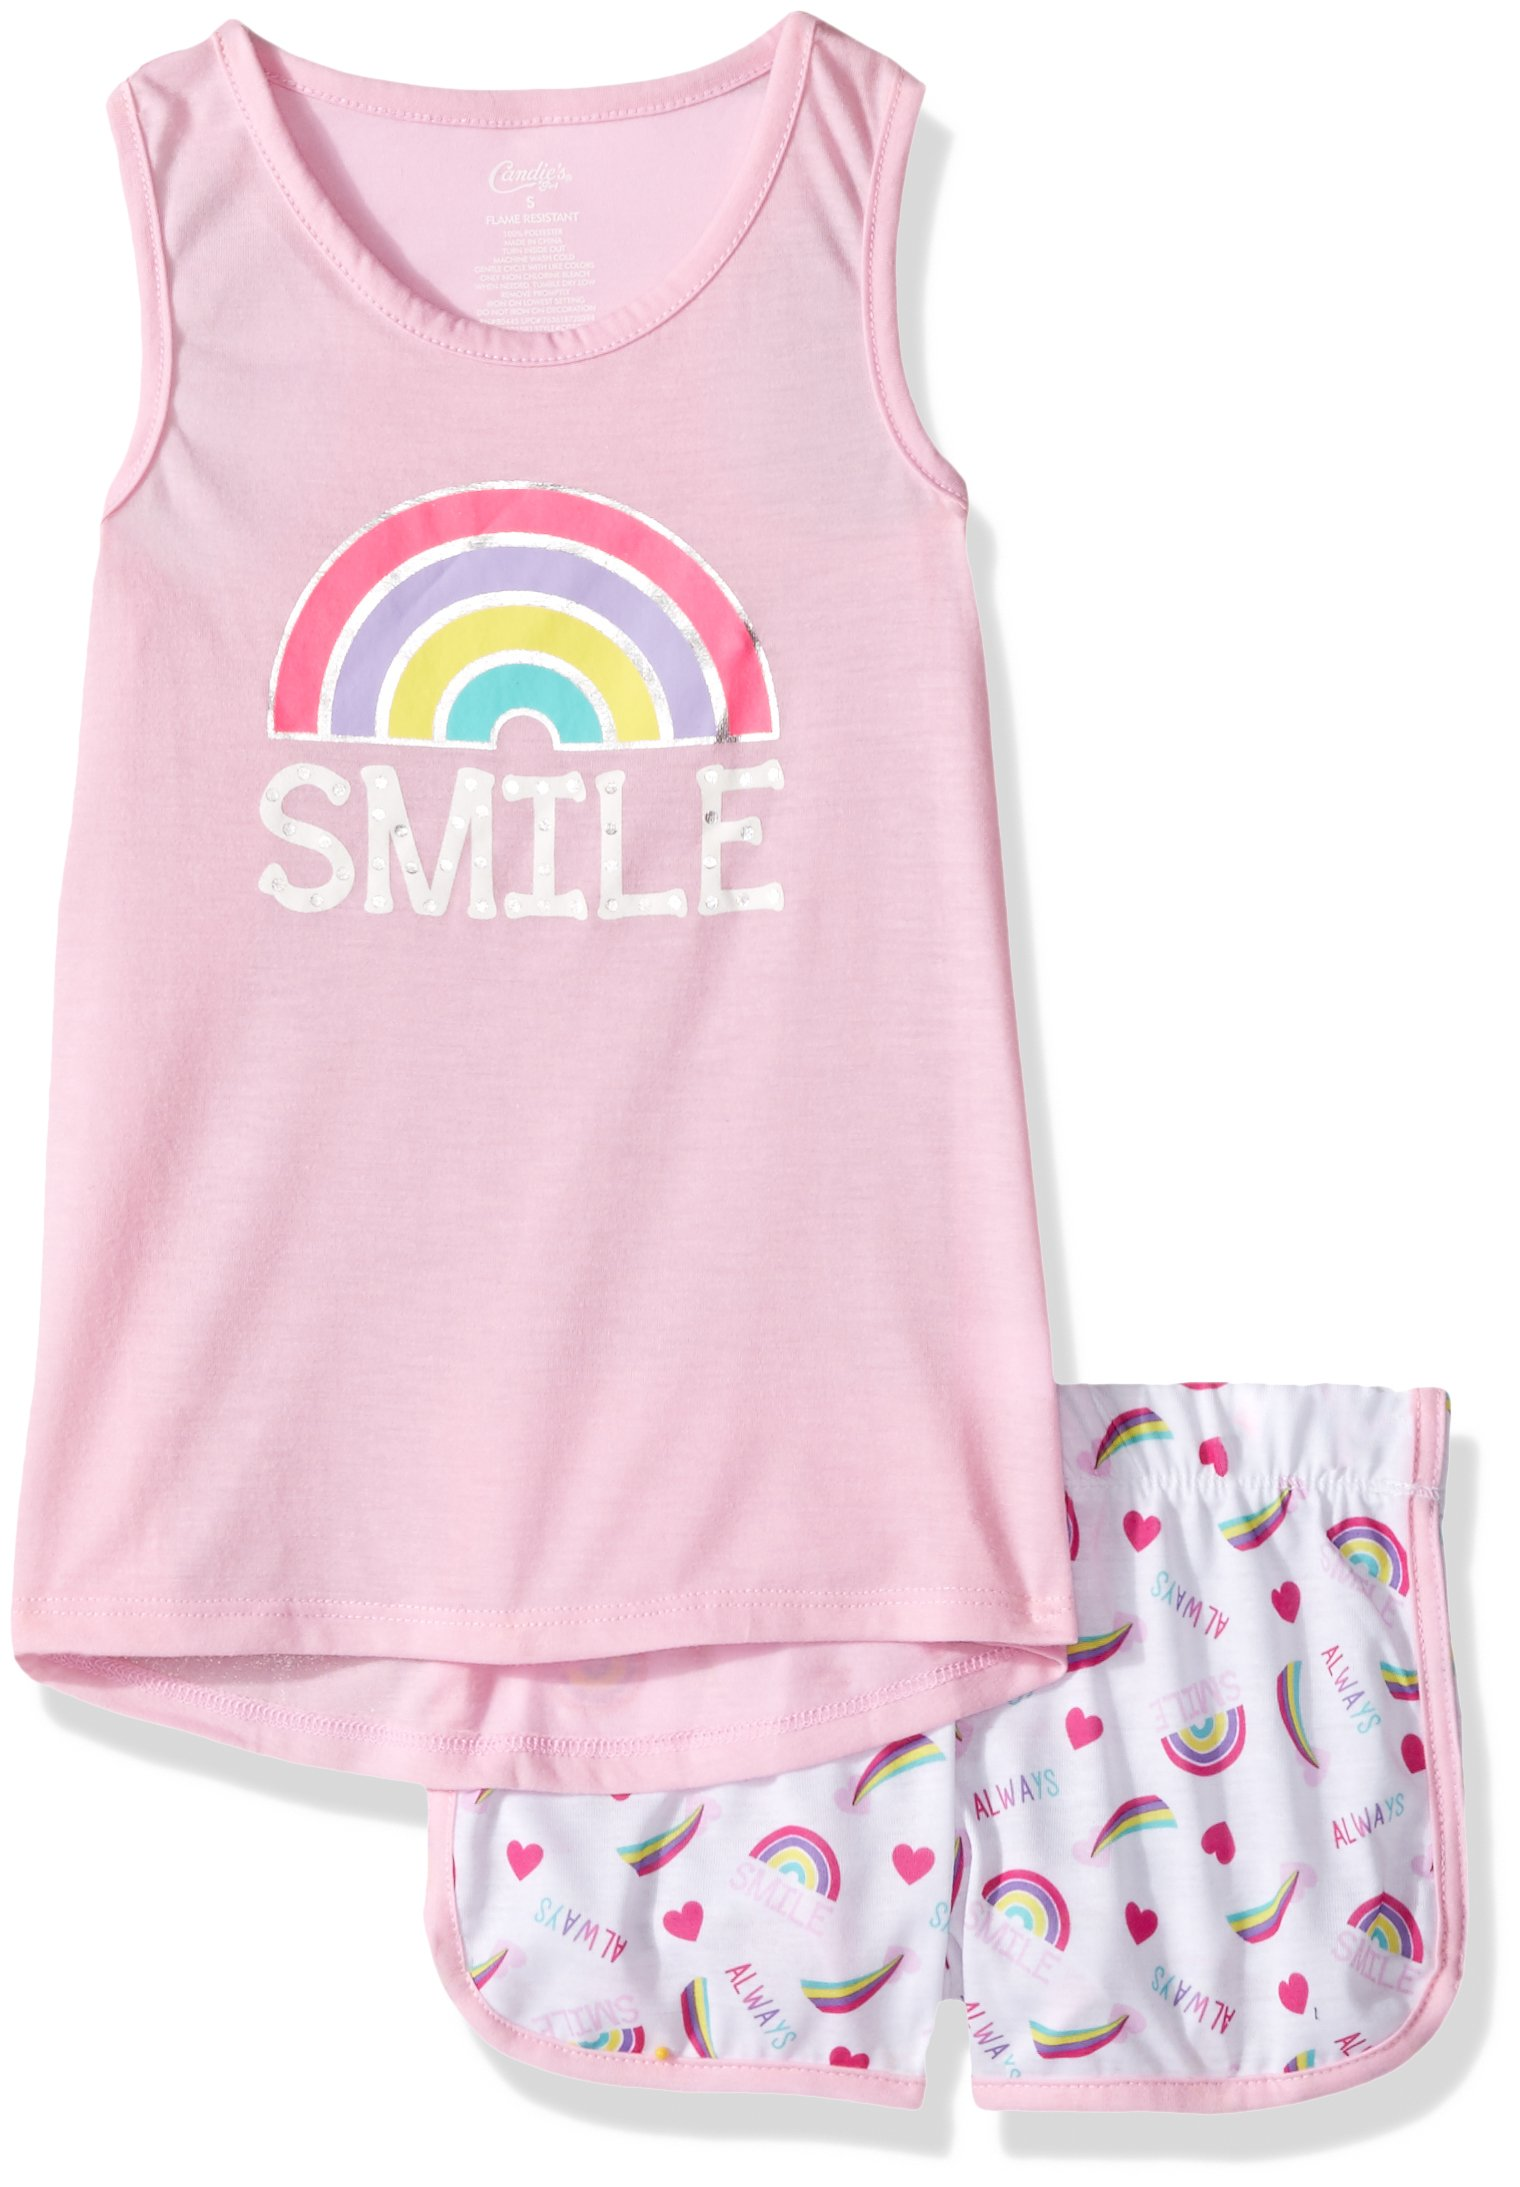 Candie's Big Girls' Tank and Short Set, Smile Pink/White, S